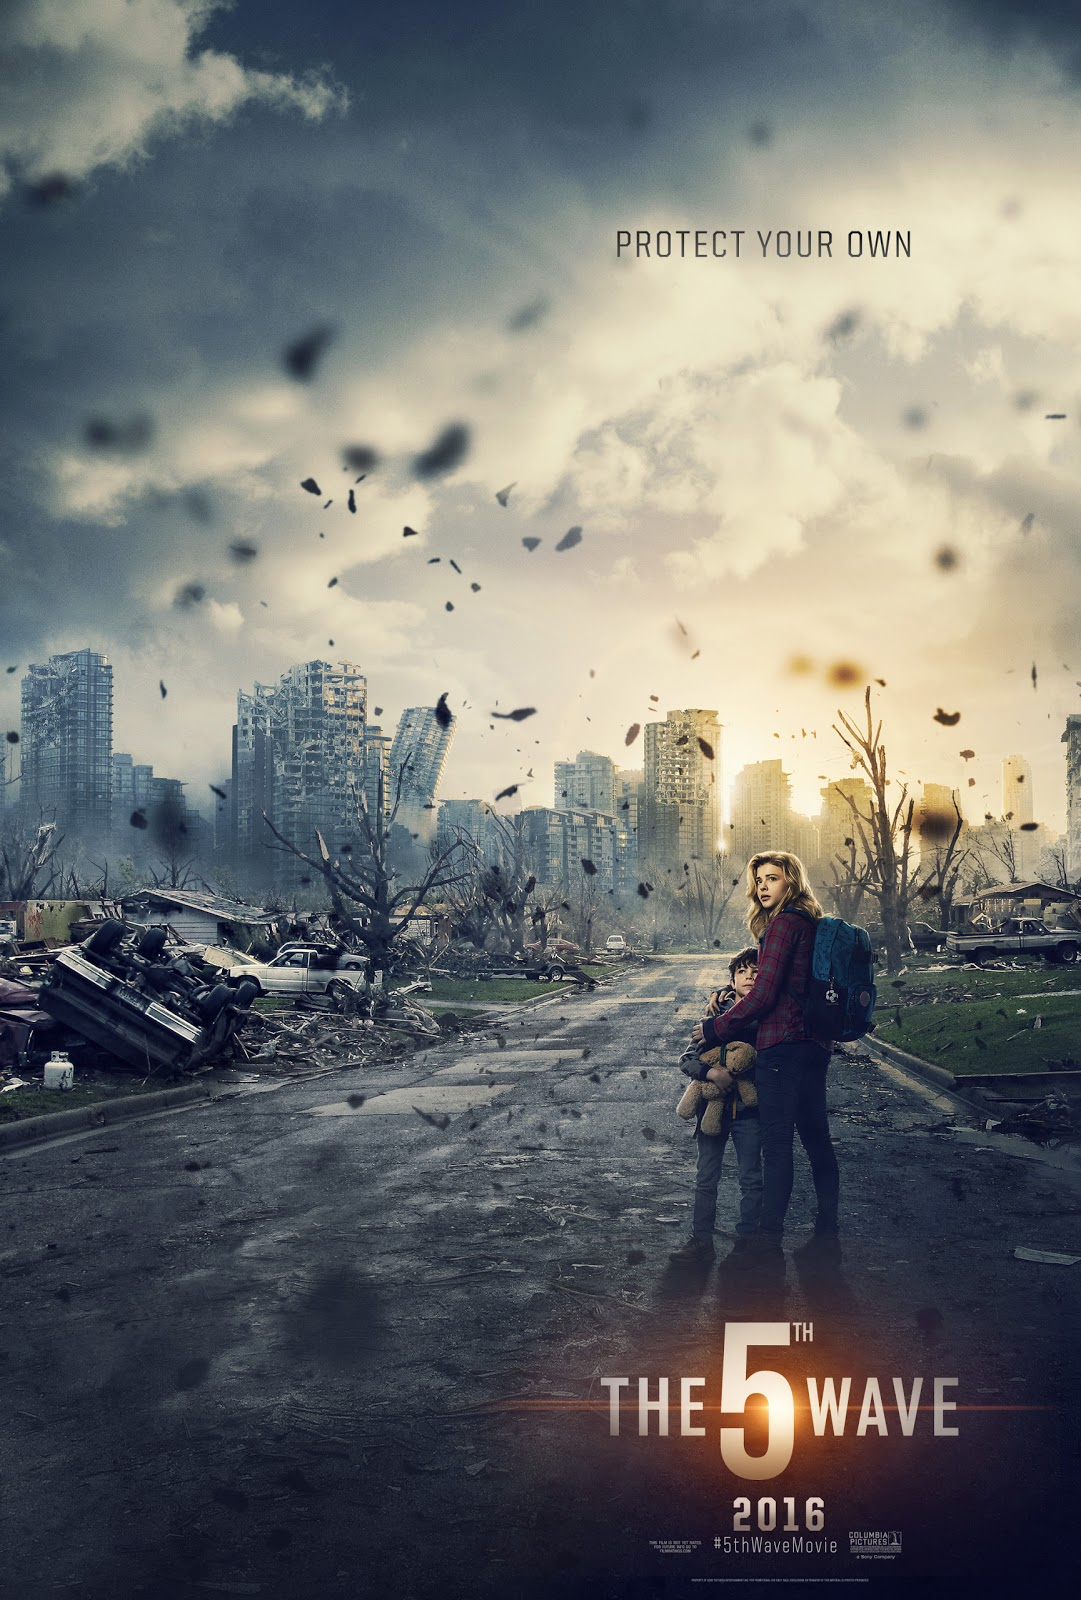 Póster La Quinta Ola - THE 5TH WAVE Poster